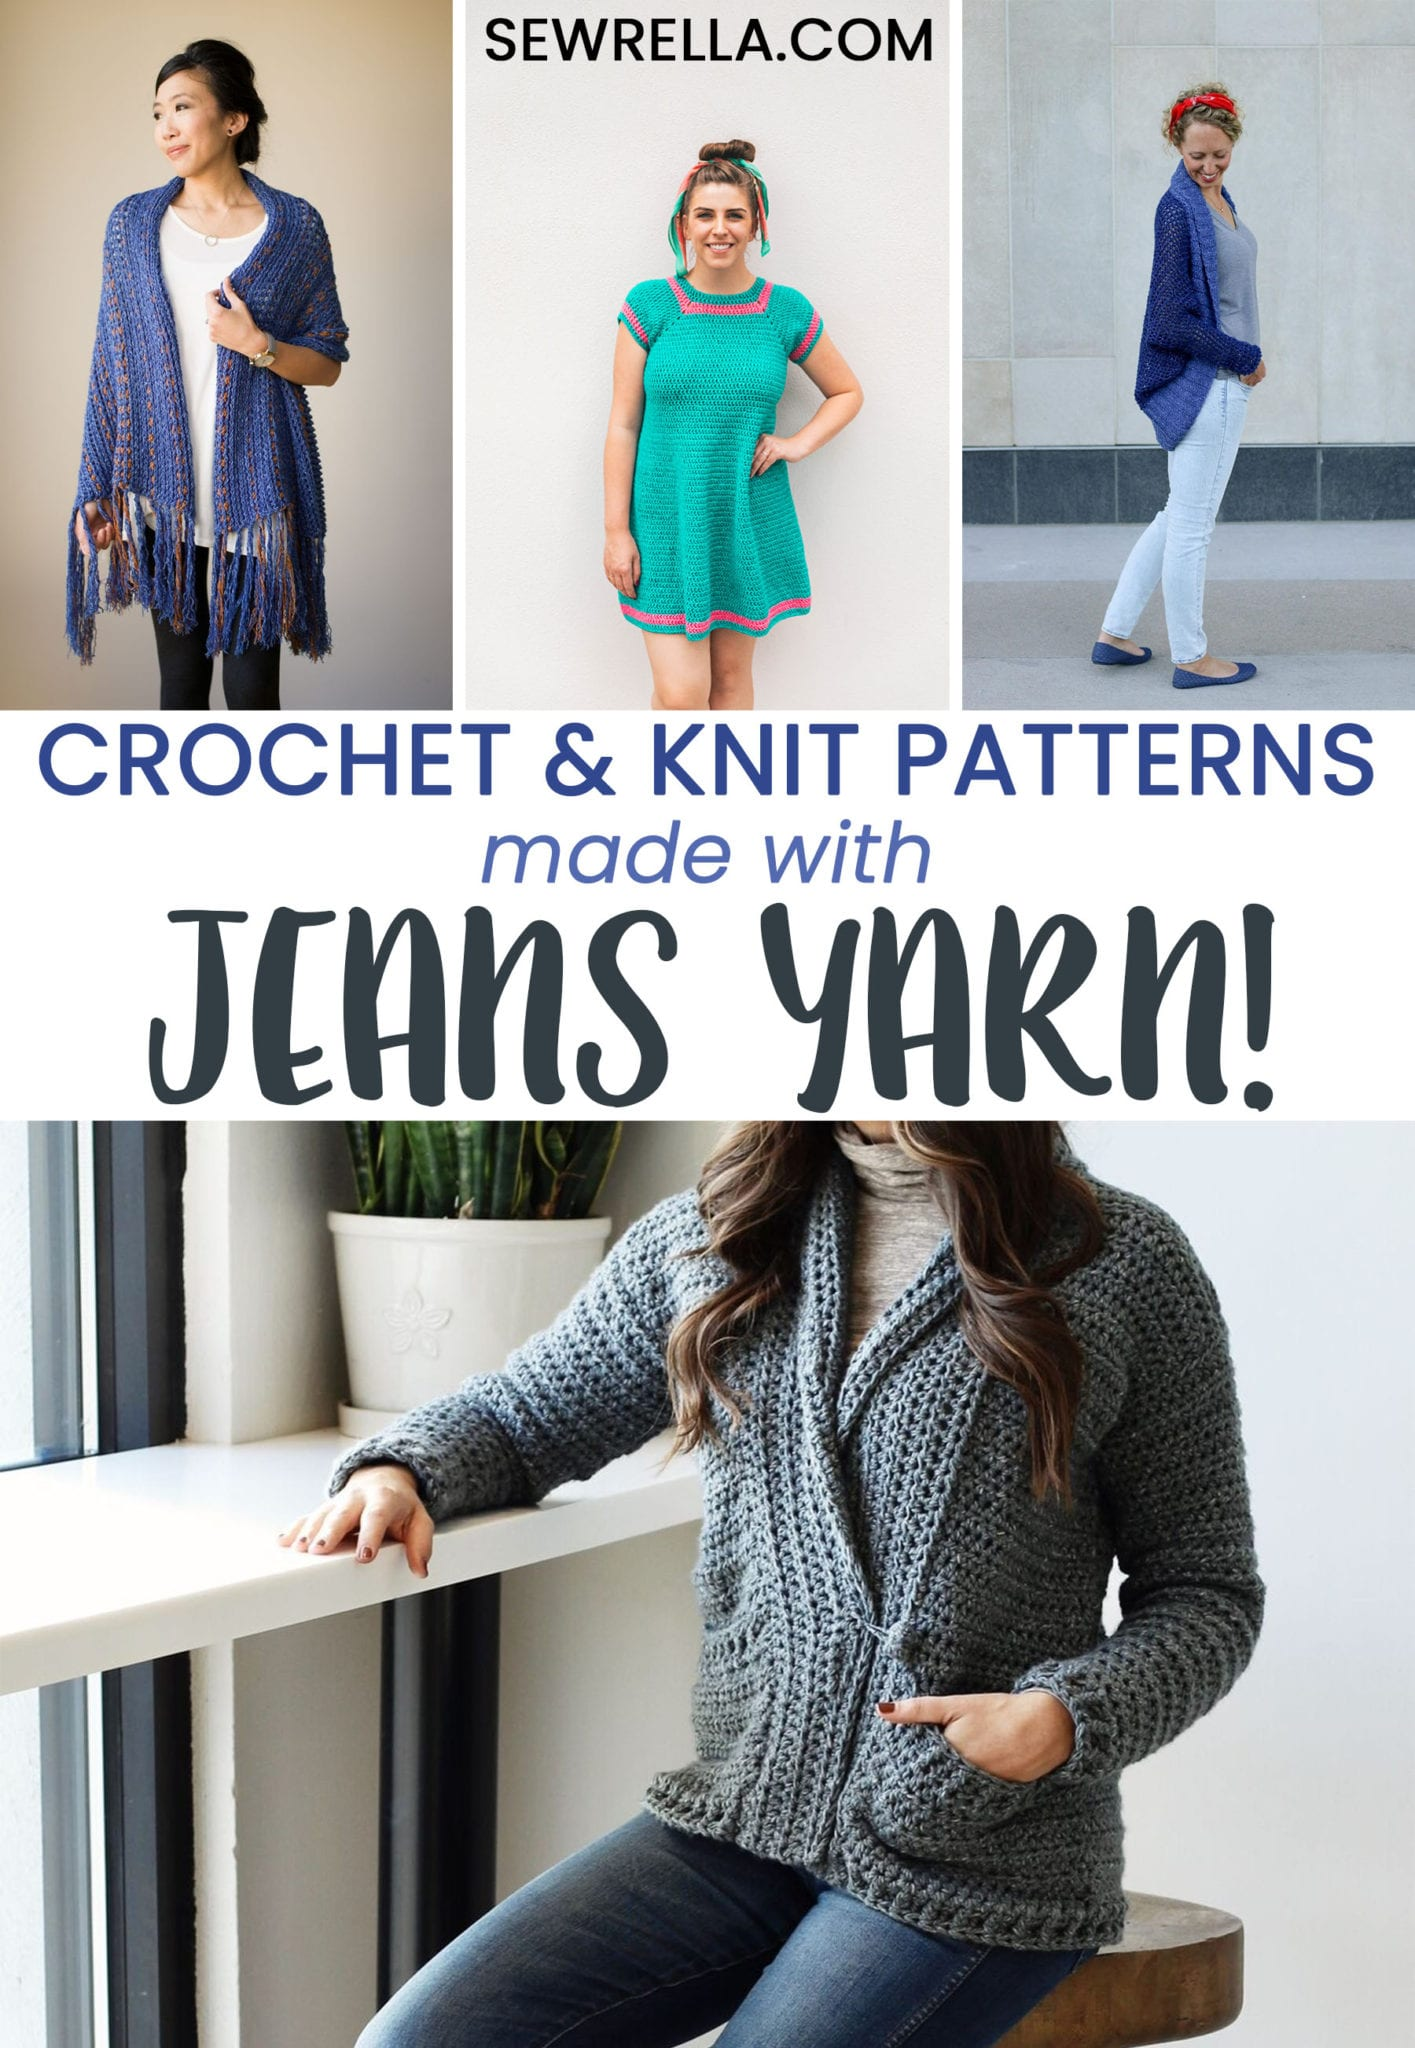 9aa714624 The Best Crochet   Knit Patterns made with Jeans Yarn! - Sewrella